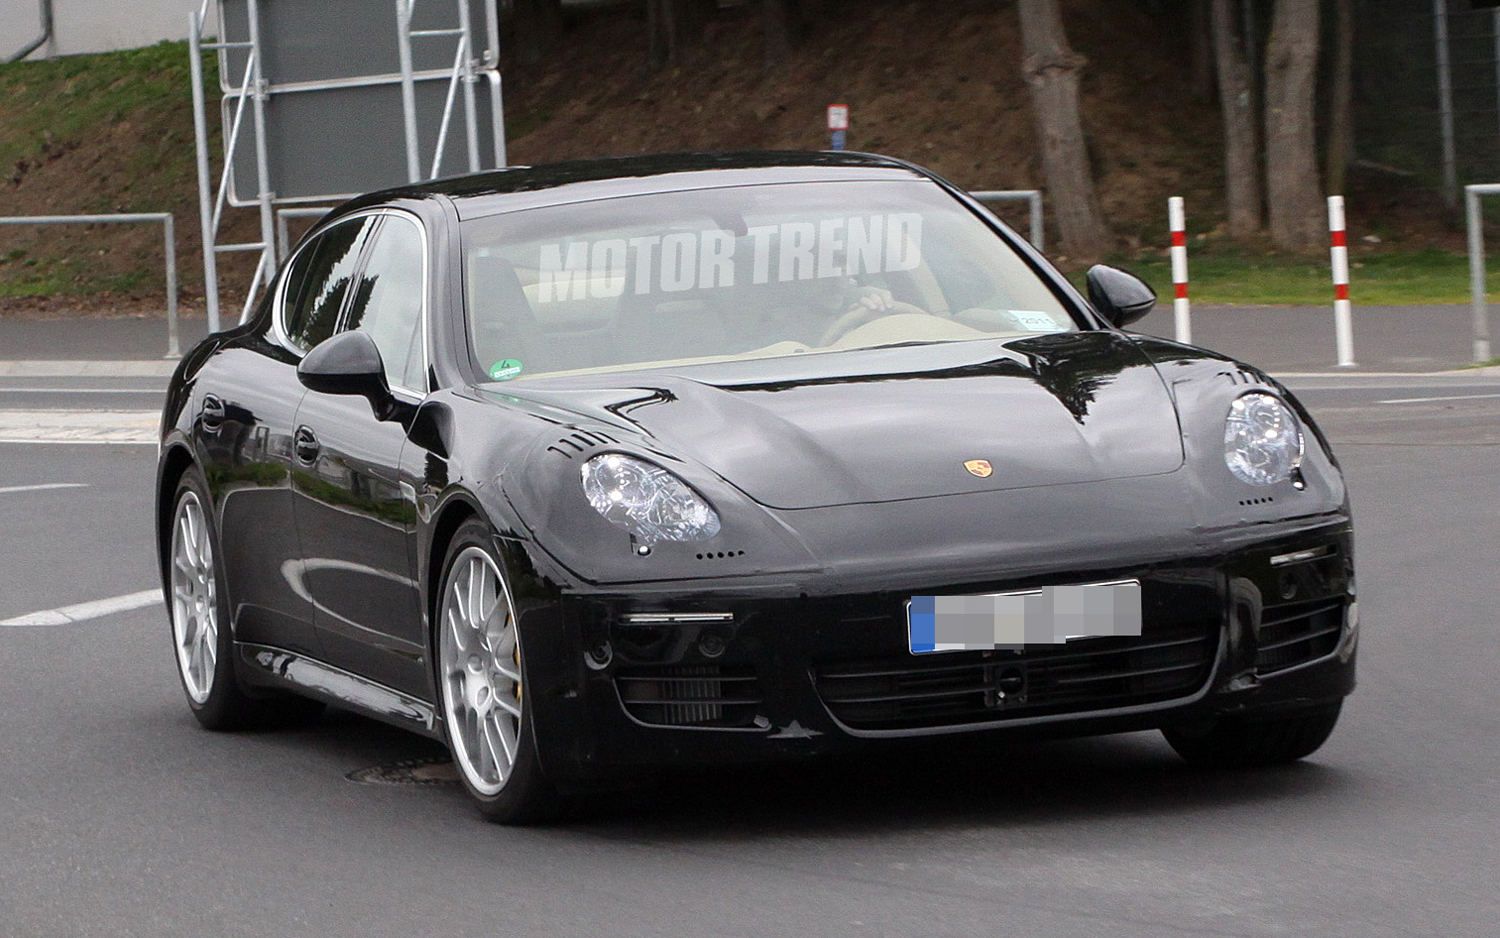 2012 Porsche Panamera facelift Front angle side view